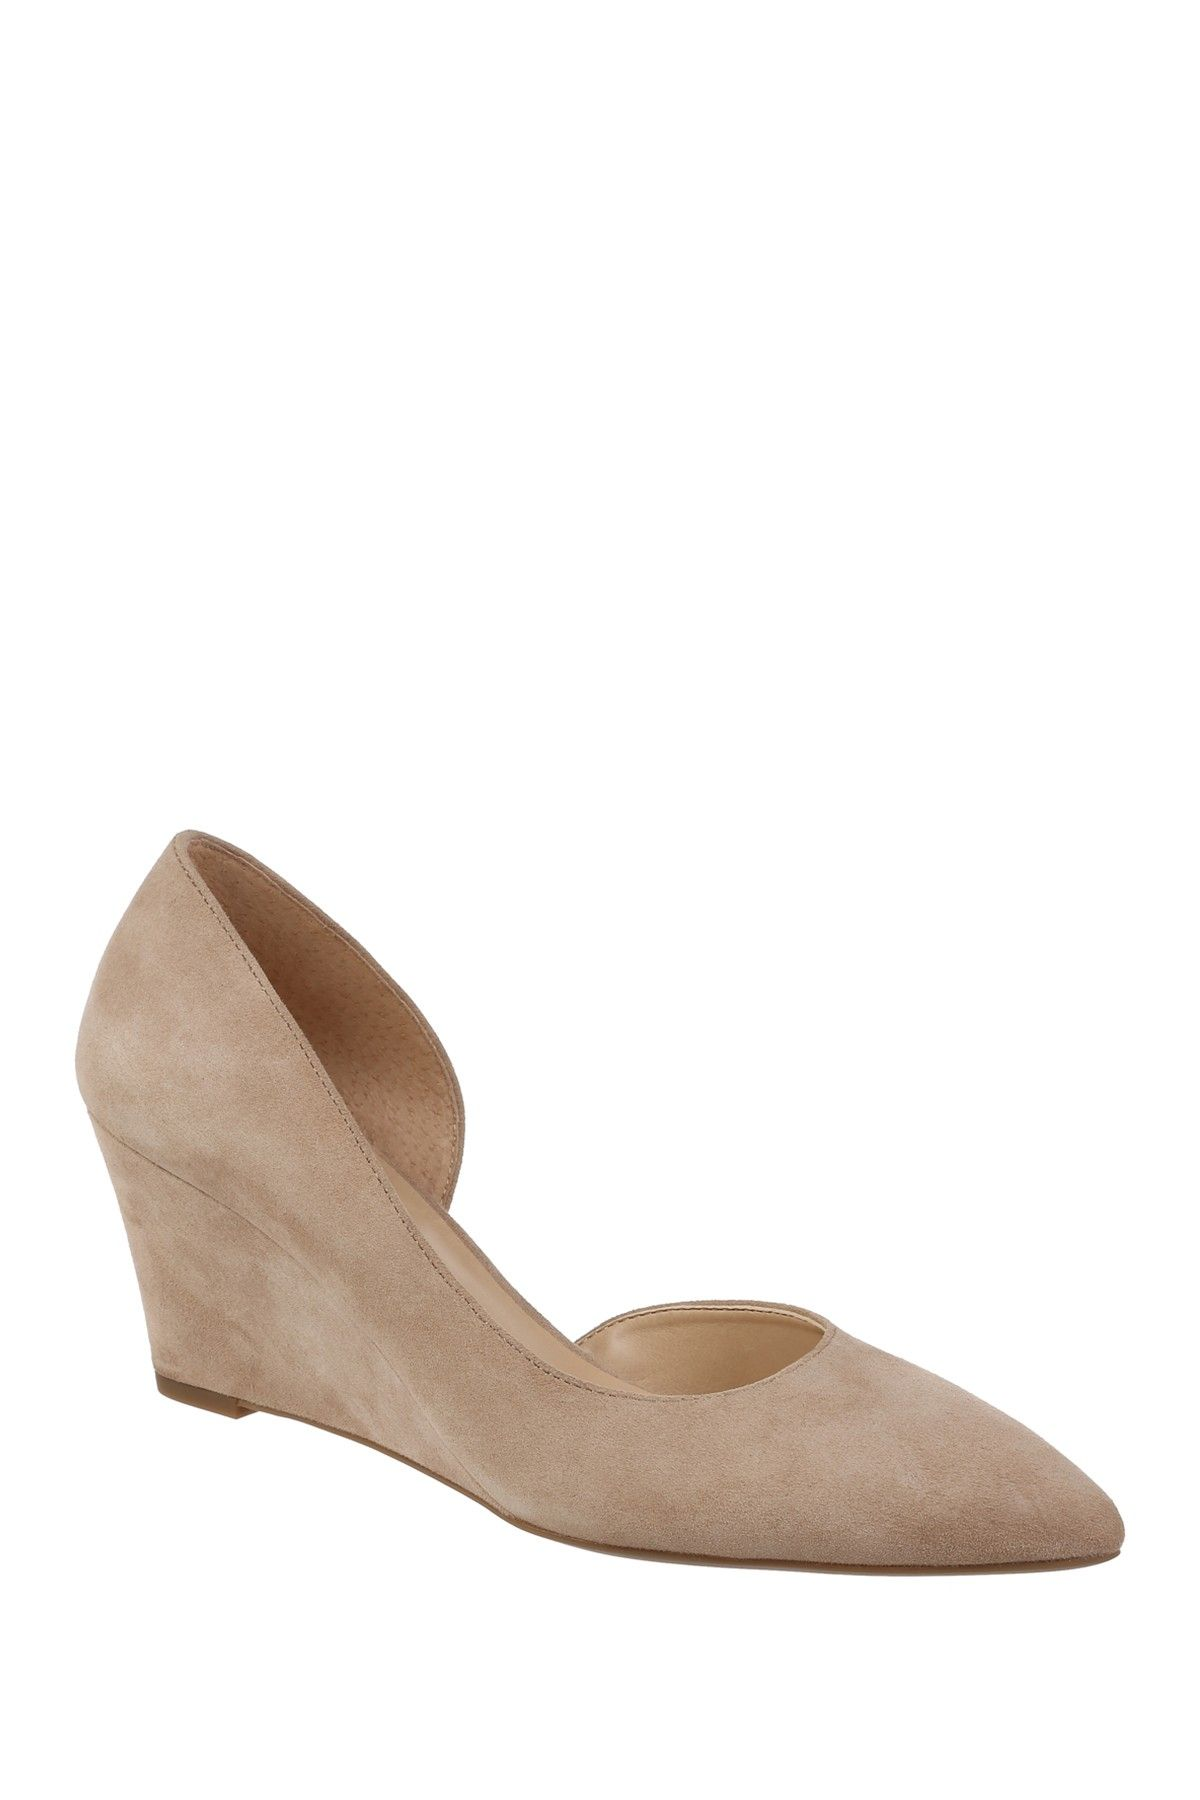 e29fcee4c3a Franco Sarto - Felice d'Orsay Wedge Pump. Free Shipping on orders over $100.